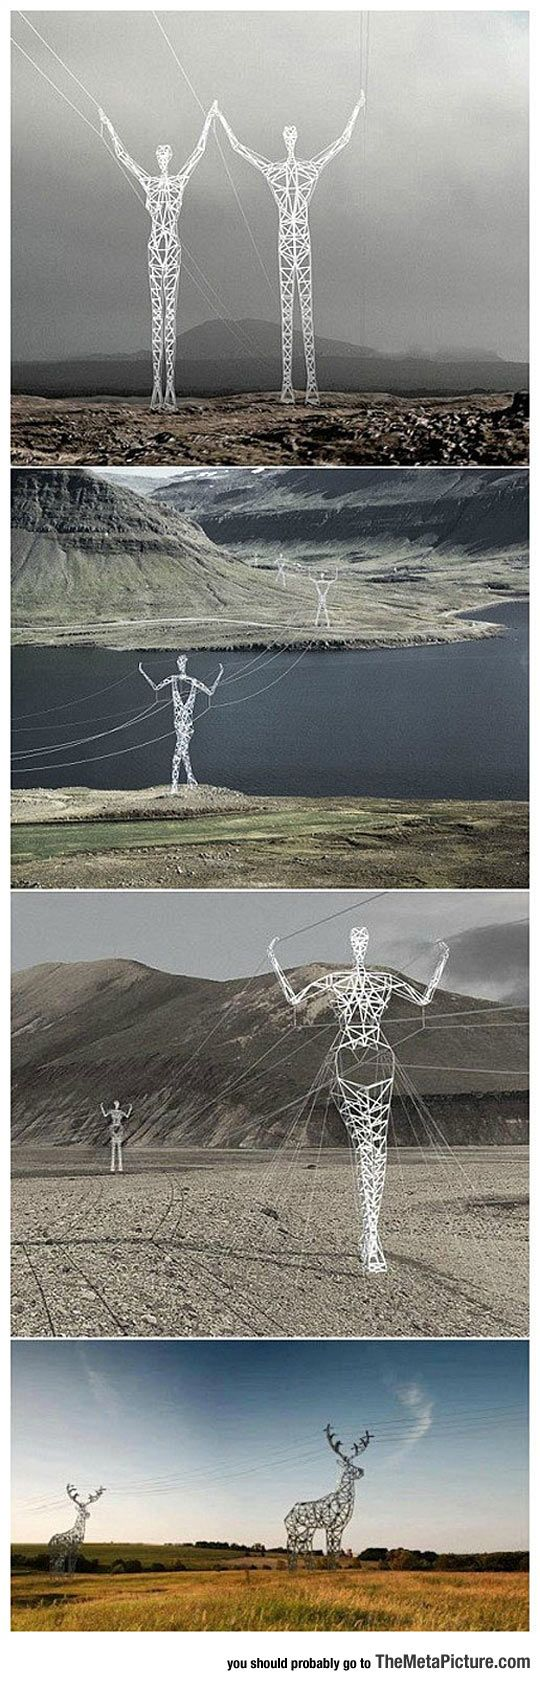 Electric Poles In Iceland - The Meta Picture